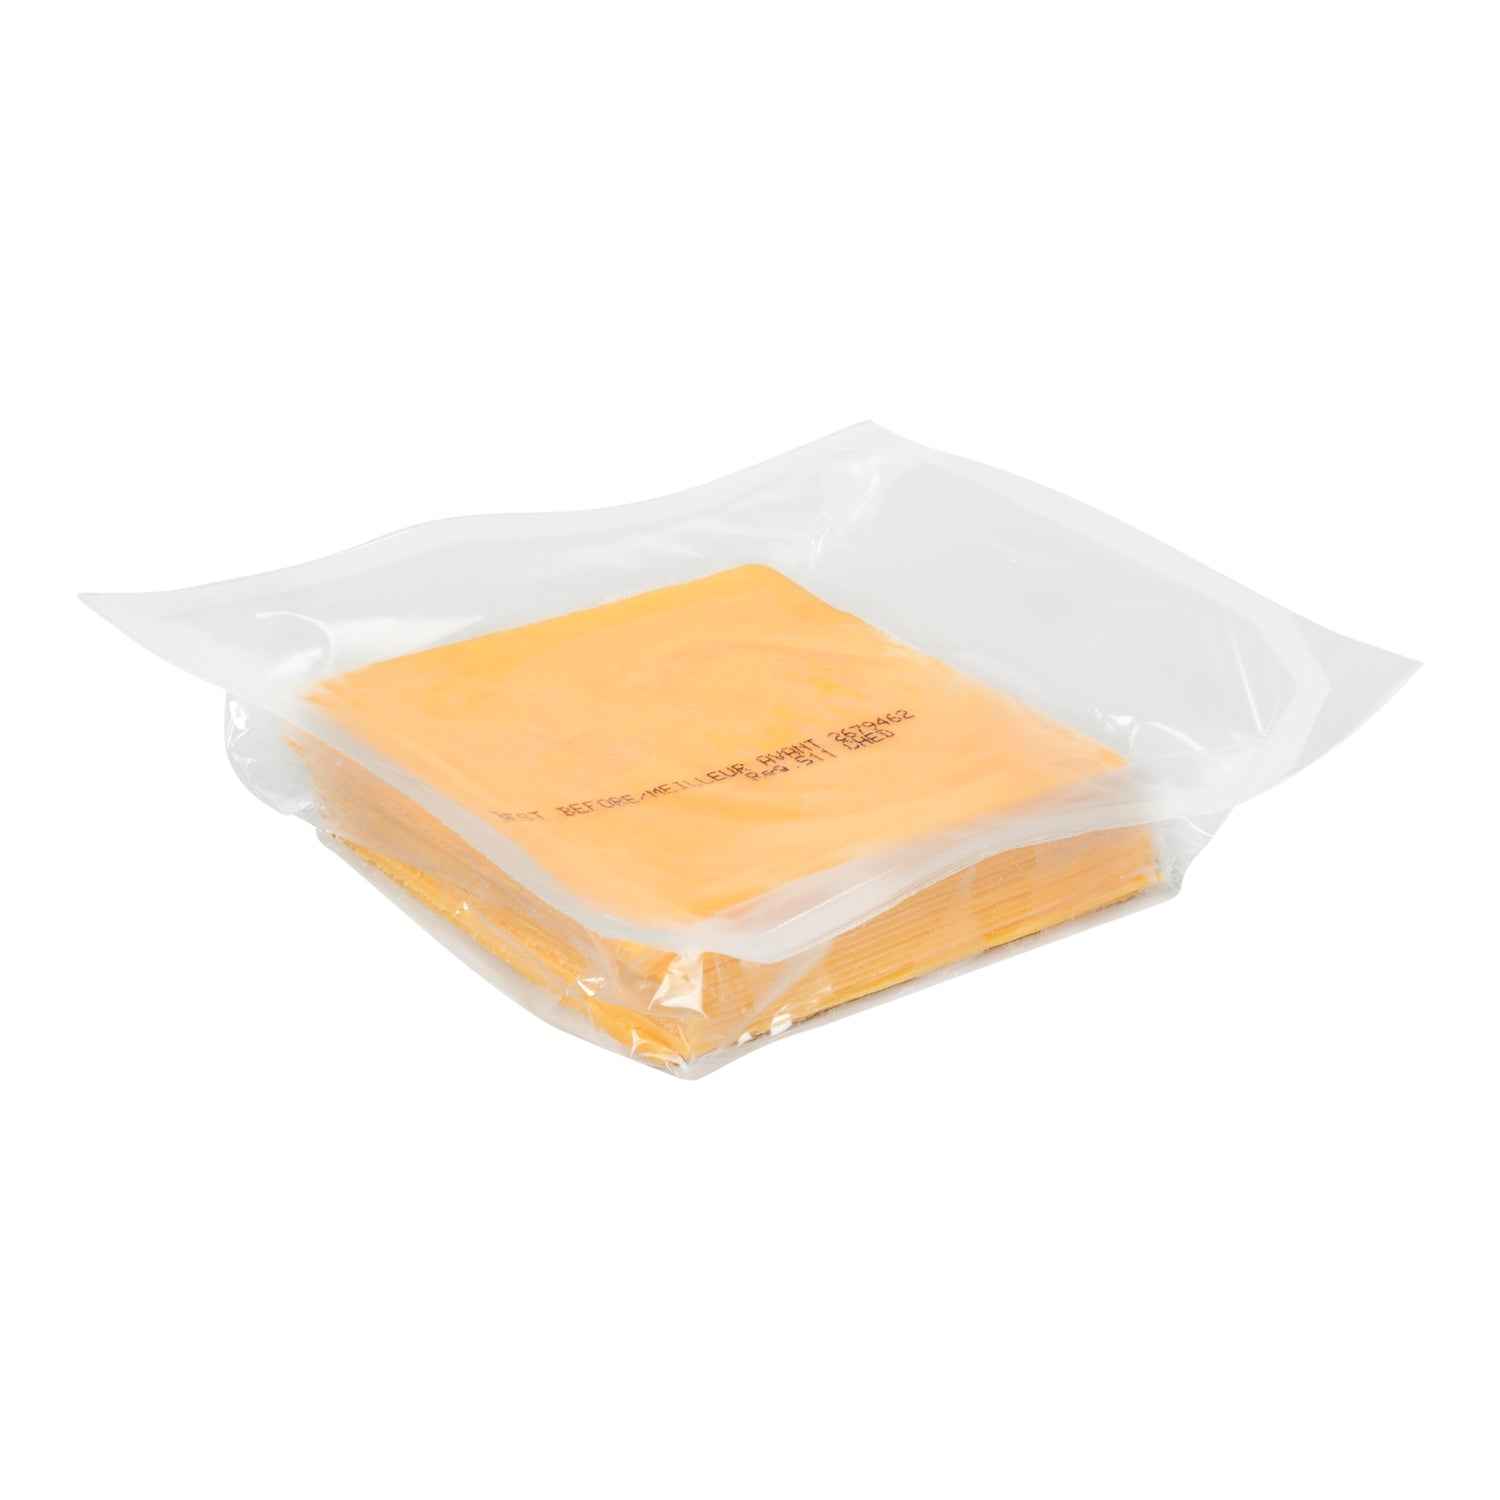 Sysco Block & Barrel Sliced Medium Cheddar Cheese 250 g - 16 Pack [$4.87/pack]